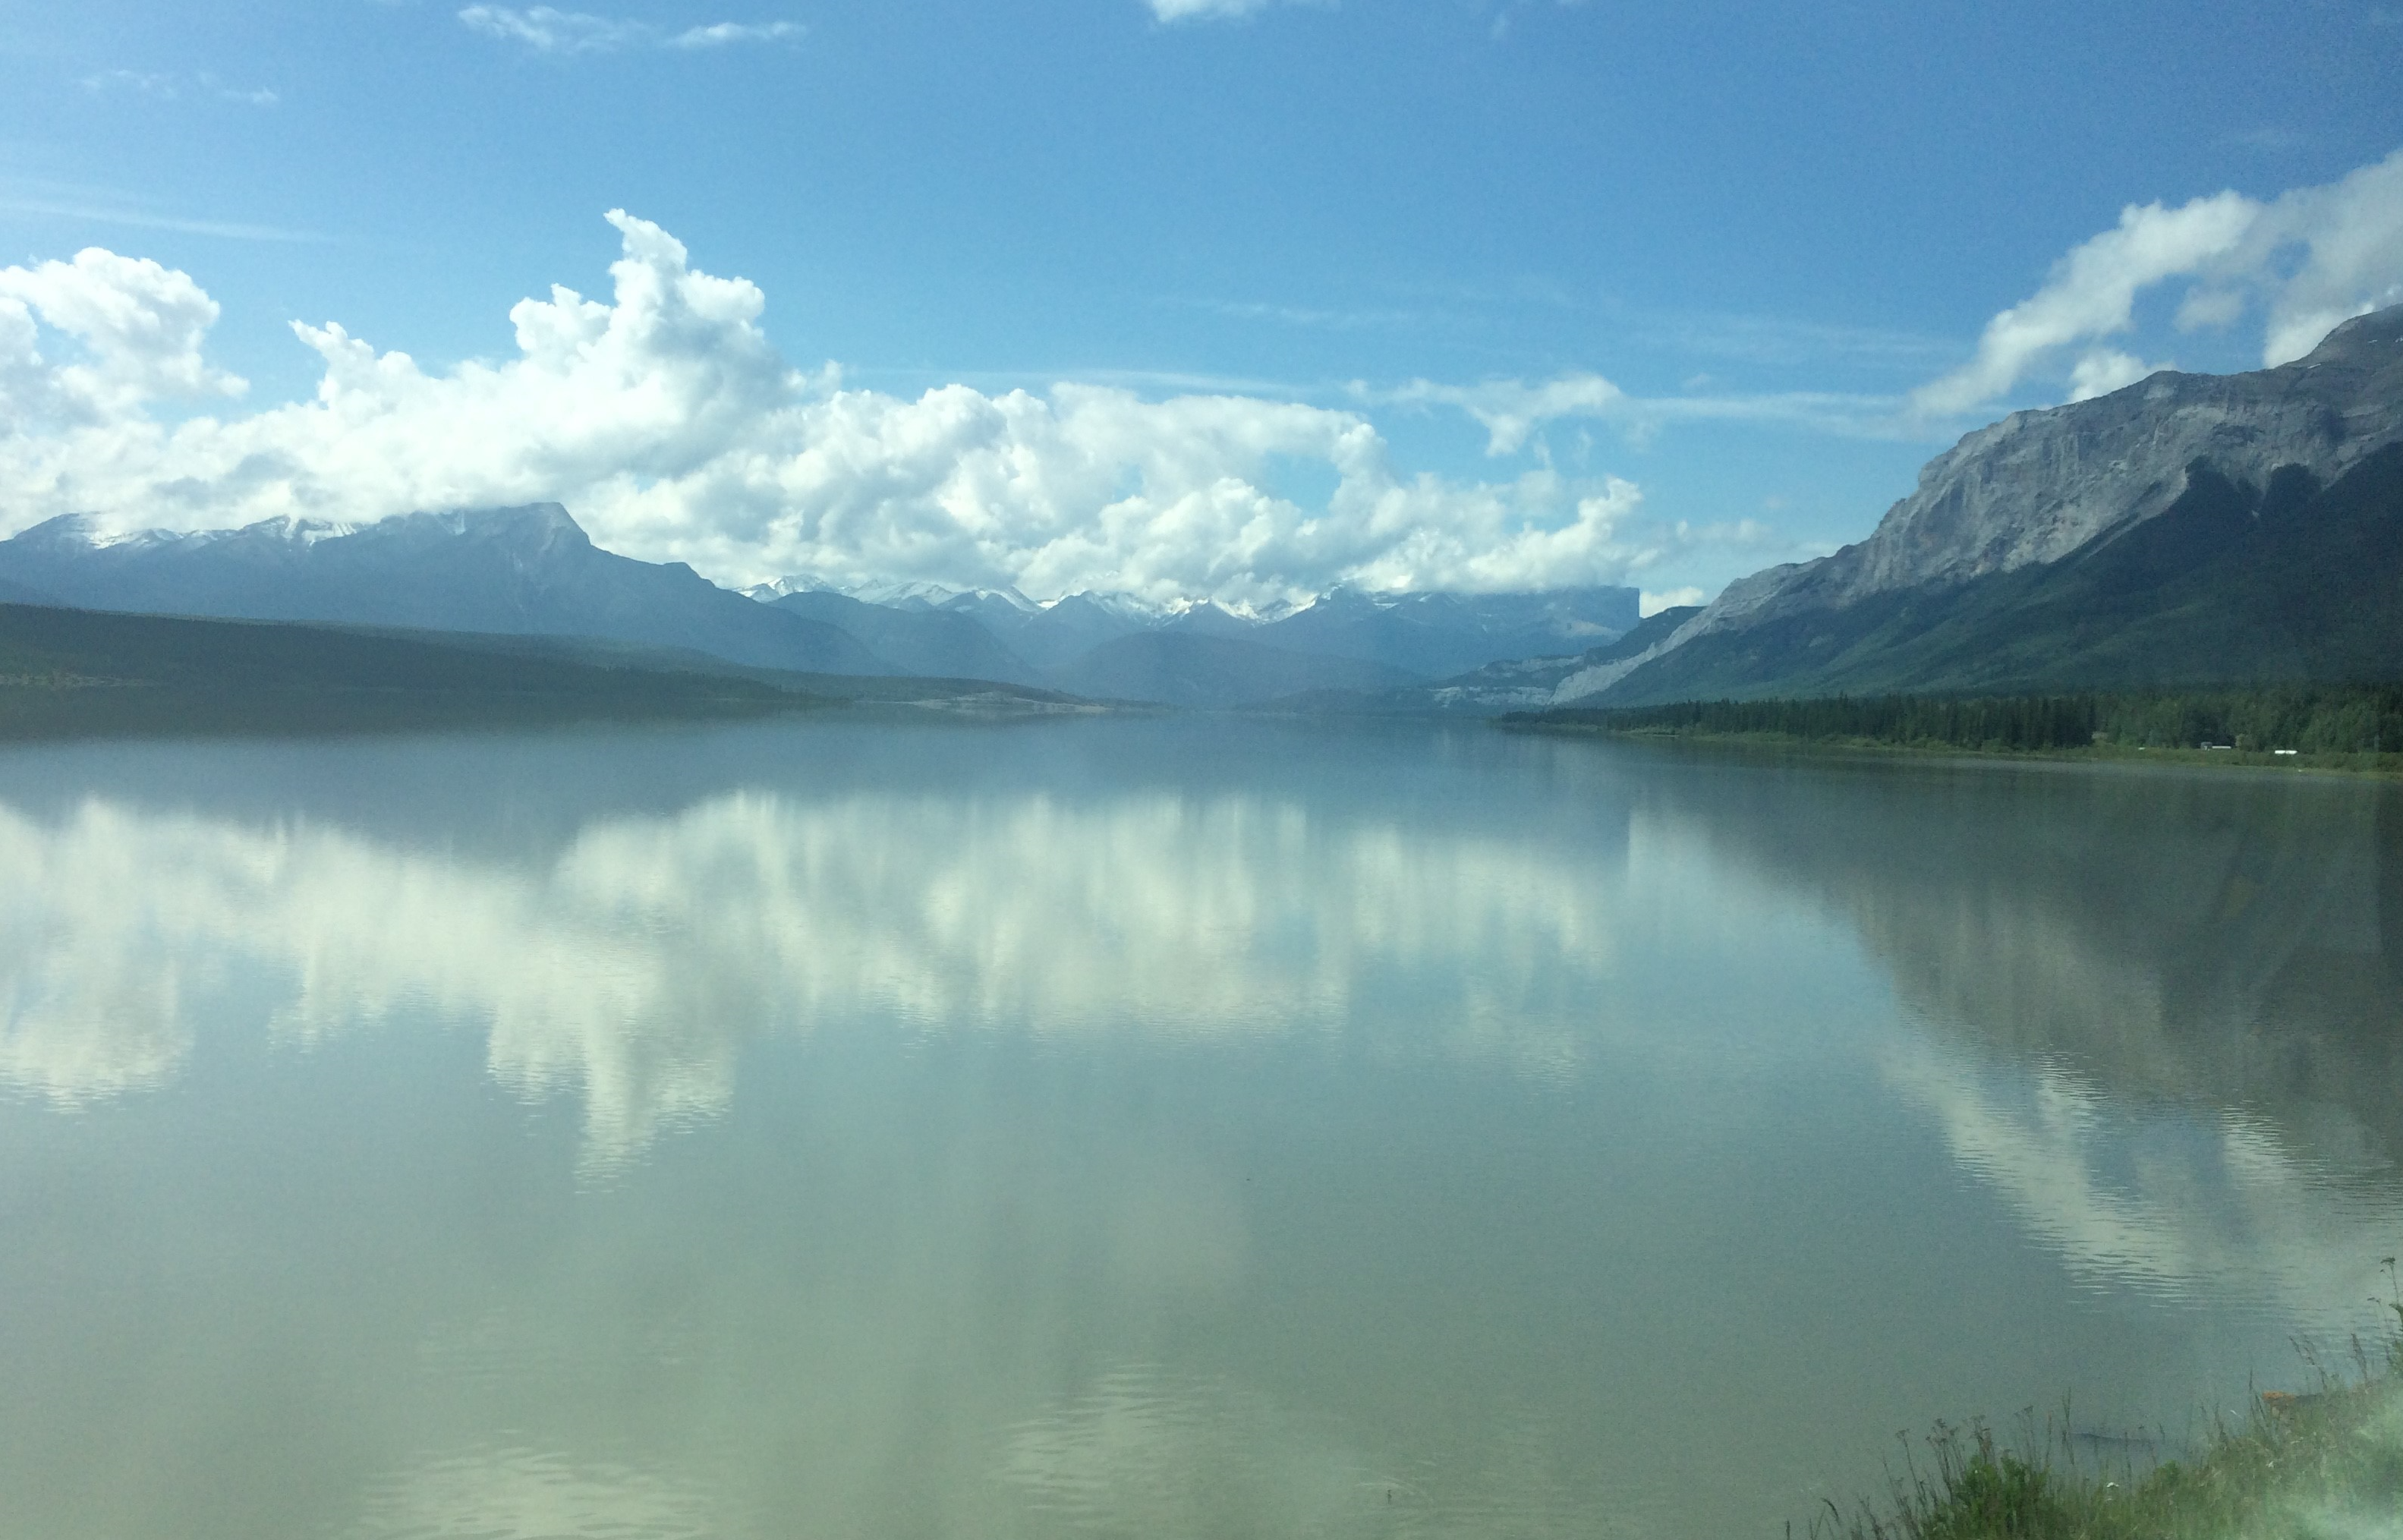 View from the train into Jasper